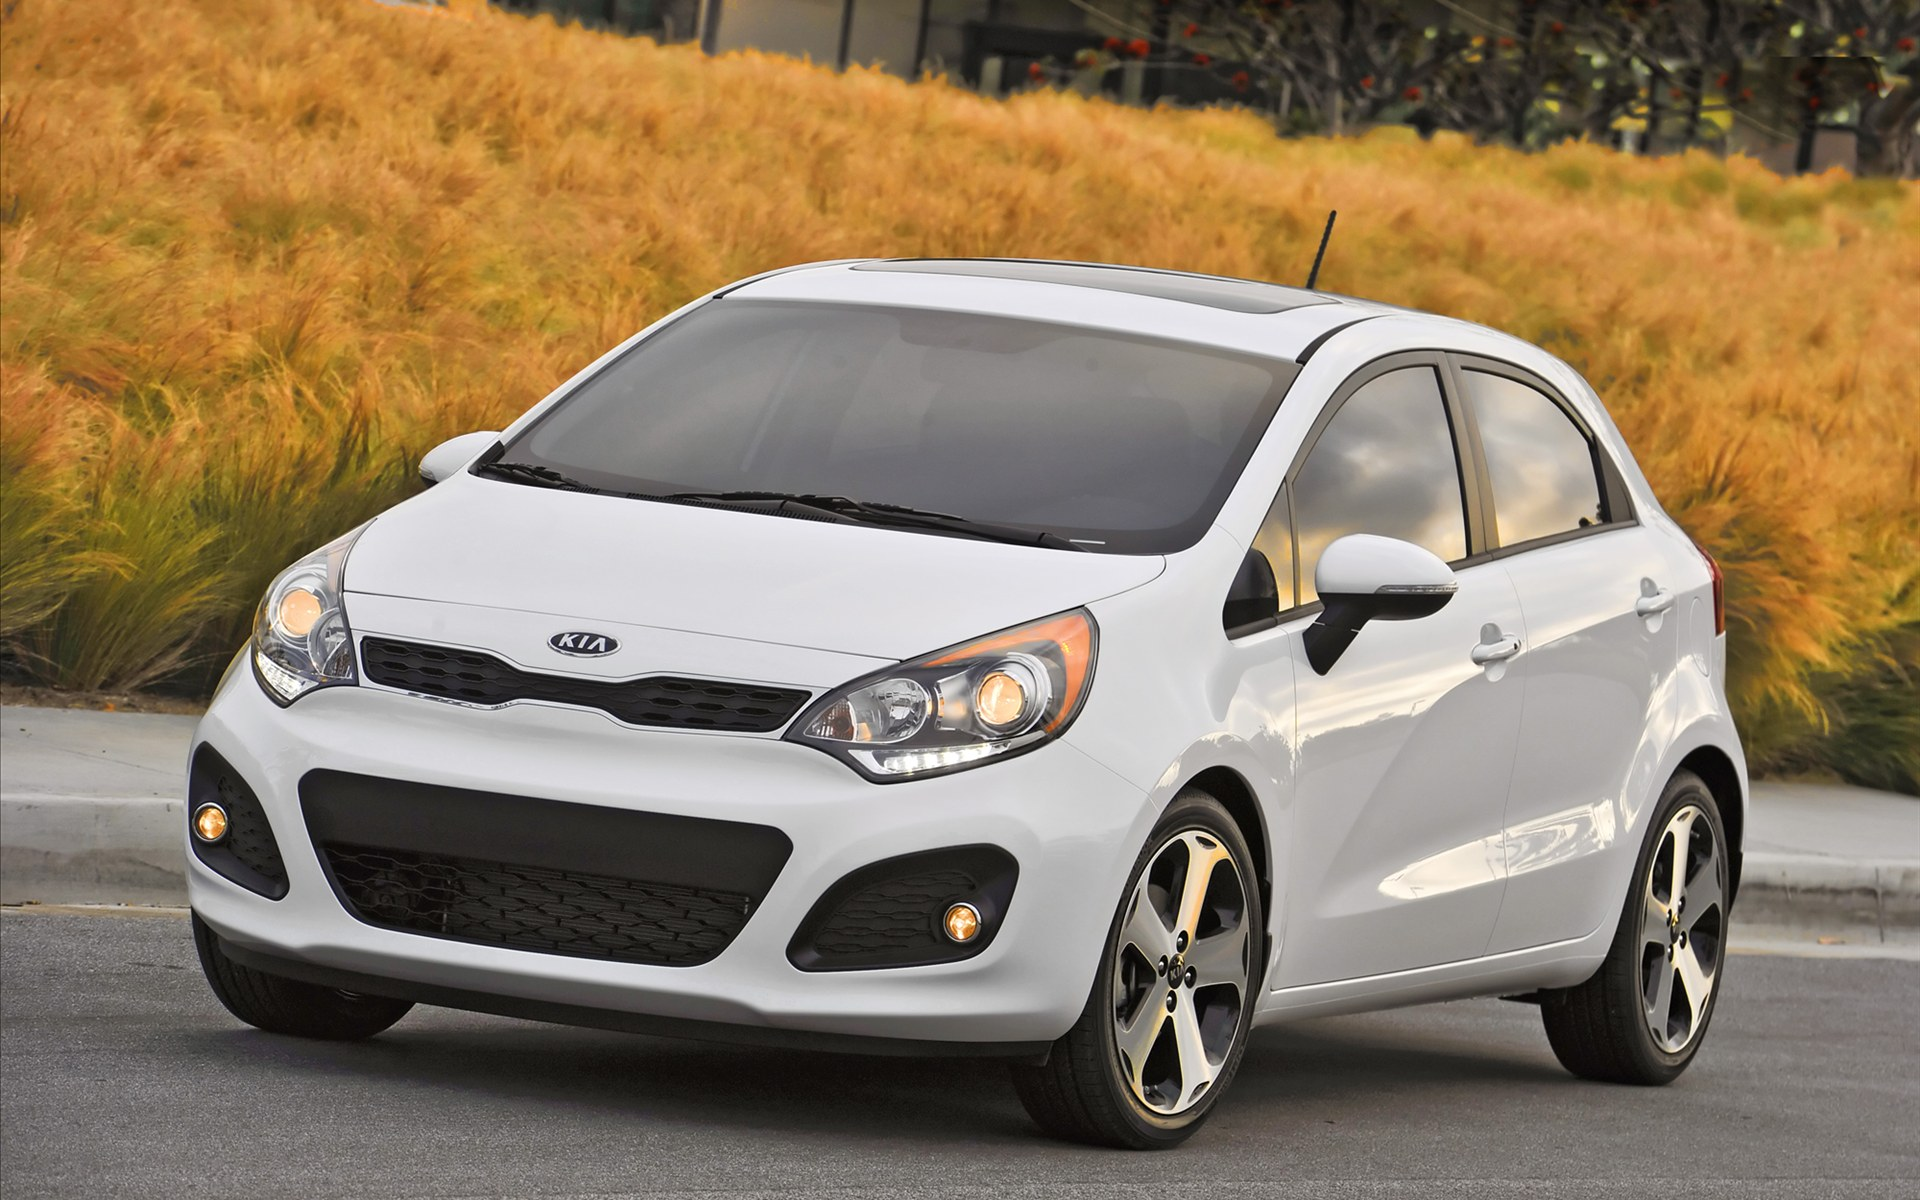 KIA RIO 5 2012 Wallpaper 7 Sense The Car 1920x1200